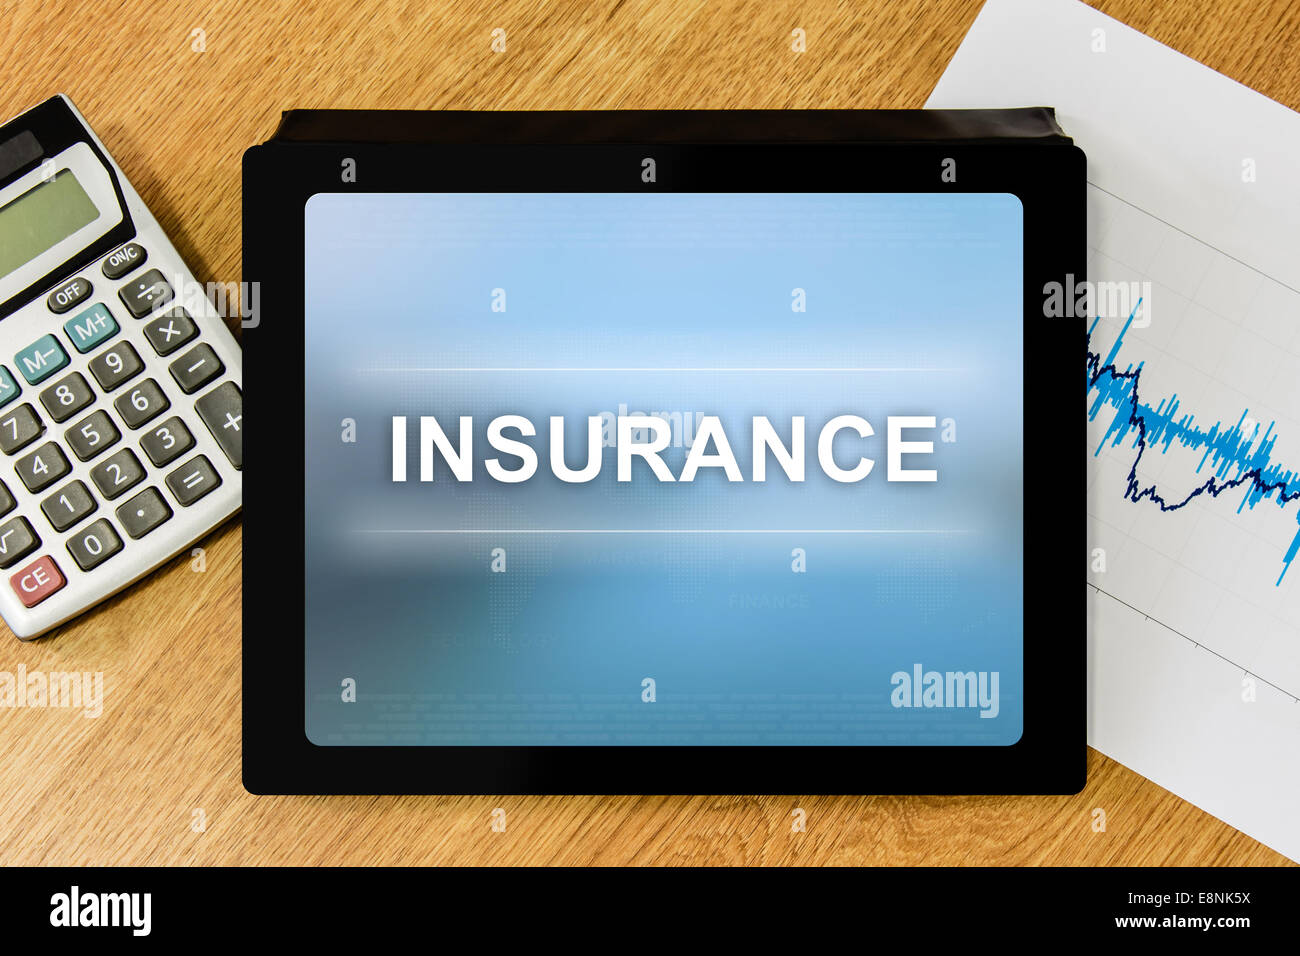 insurance word on digital tablet with calculator and financial graph - Stock Image